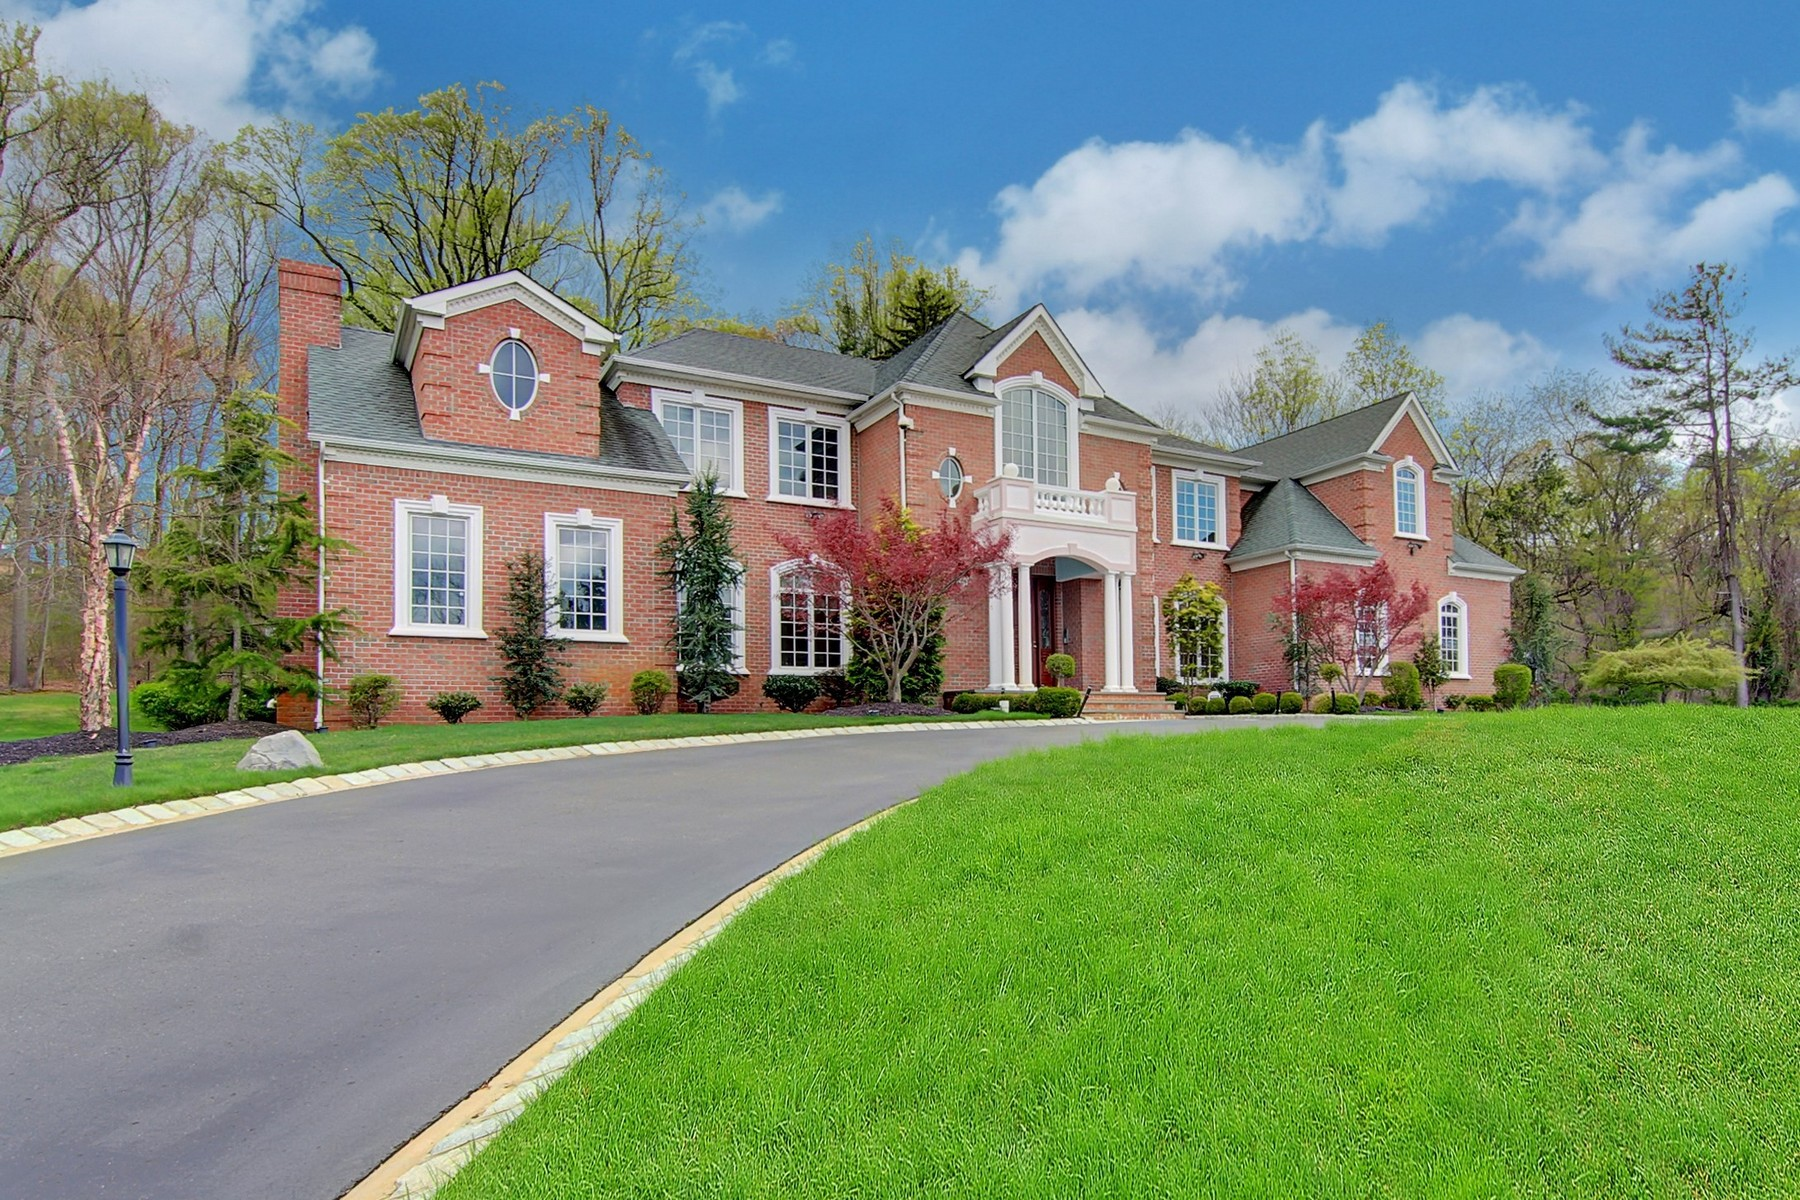 Single Family Home for Sale at Majestic Estate 216 Holland Road Holmdel, New Jersey 07733 United States